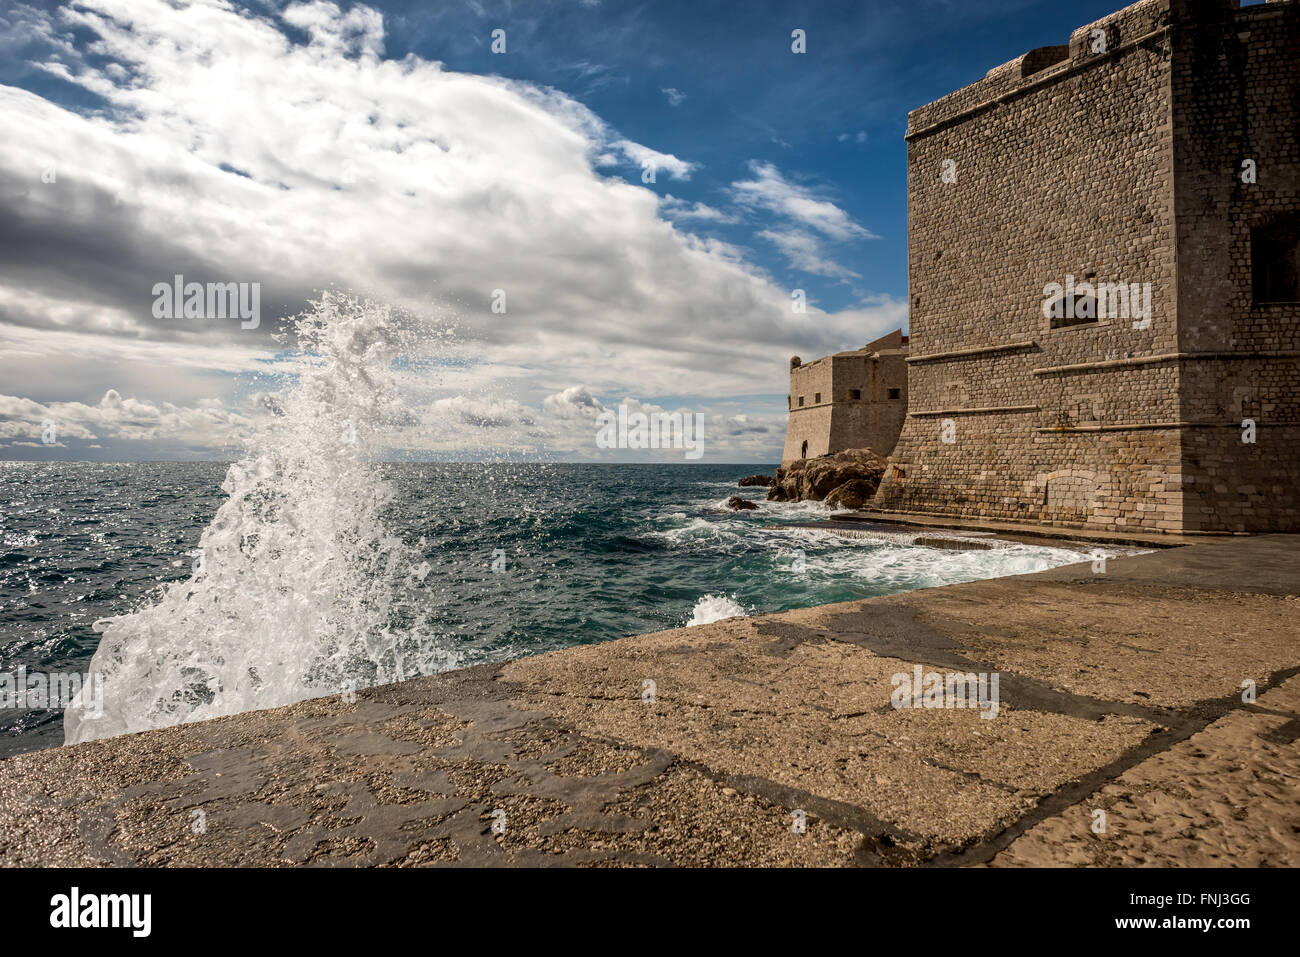 Waves splashing against the ancient city walls of the old city of Dubrovnik, Croatia. - Stock Image